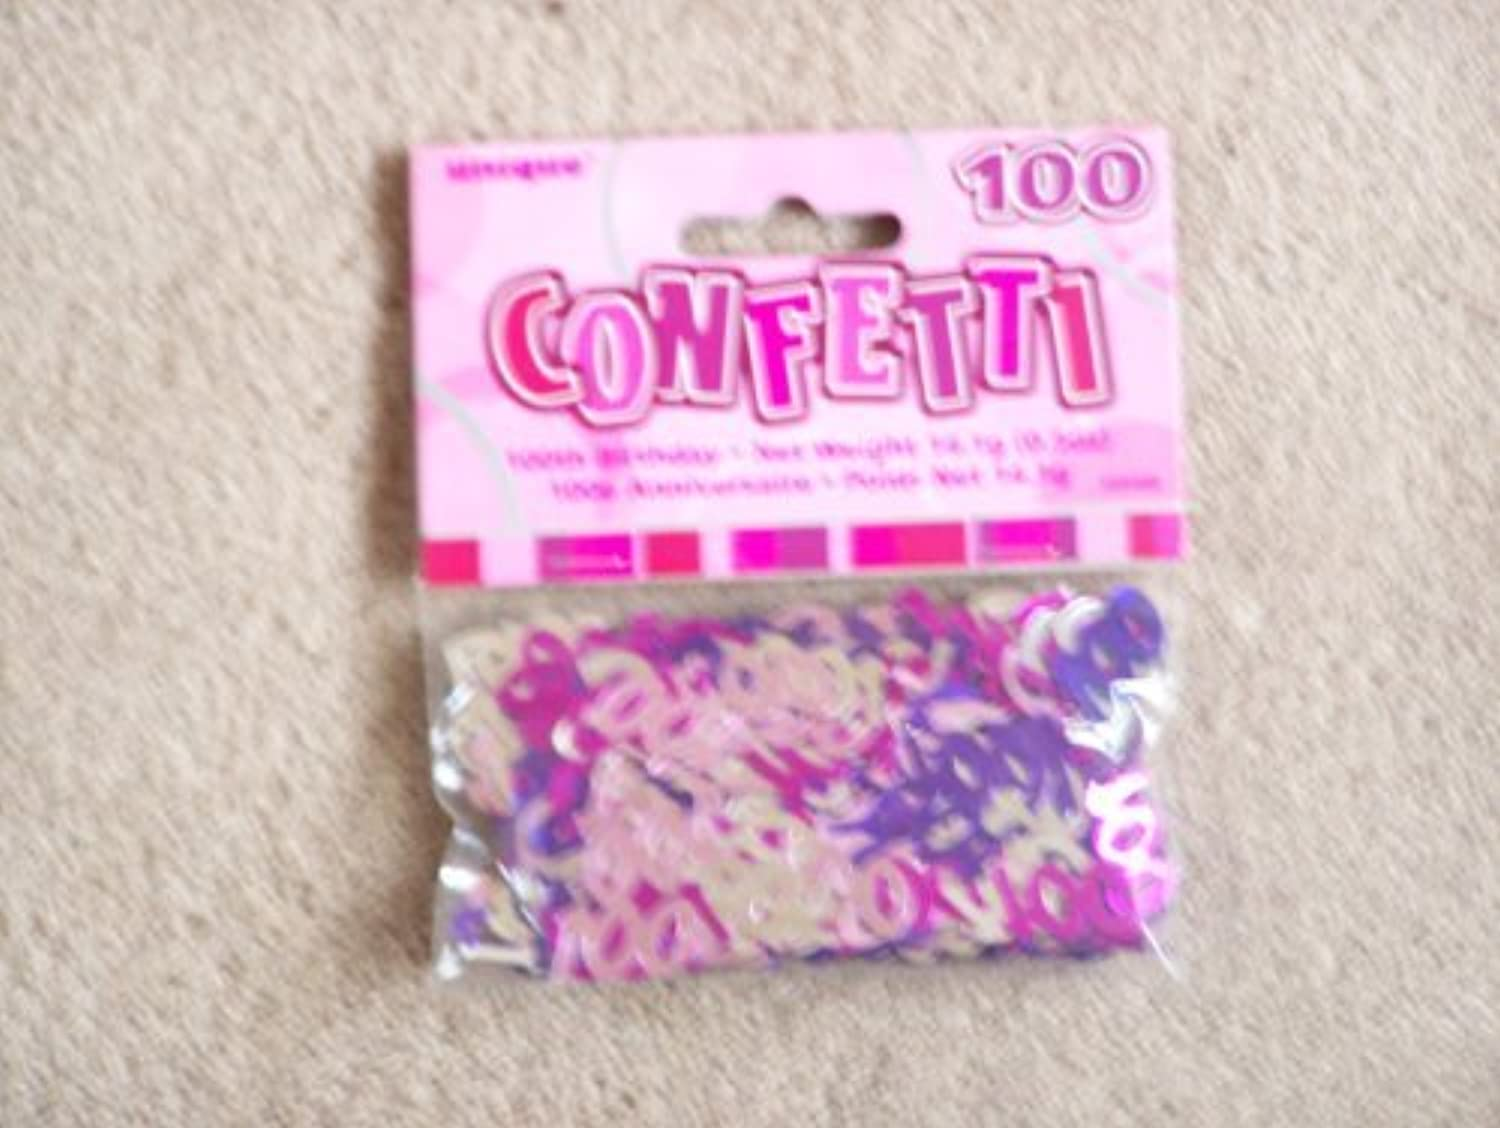 100TH BIRTHDAY CONFETTI (NEW UNIQUE PINK hol) by Every-occasion-party-supplies